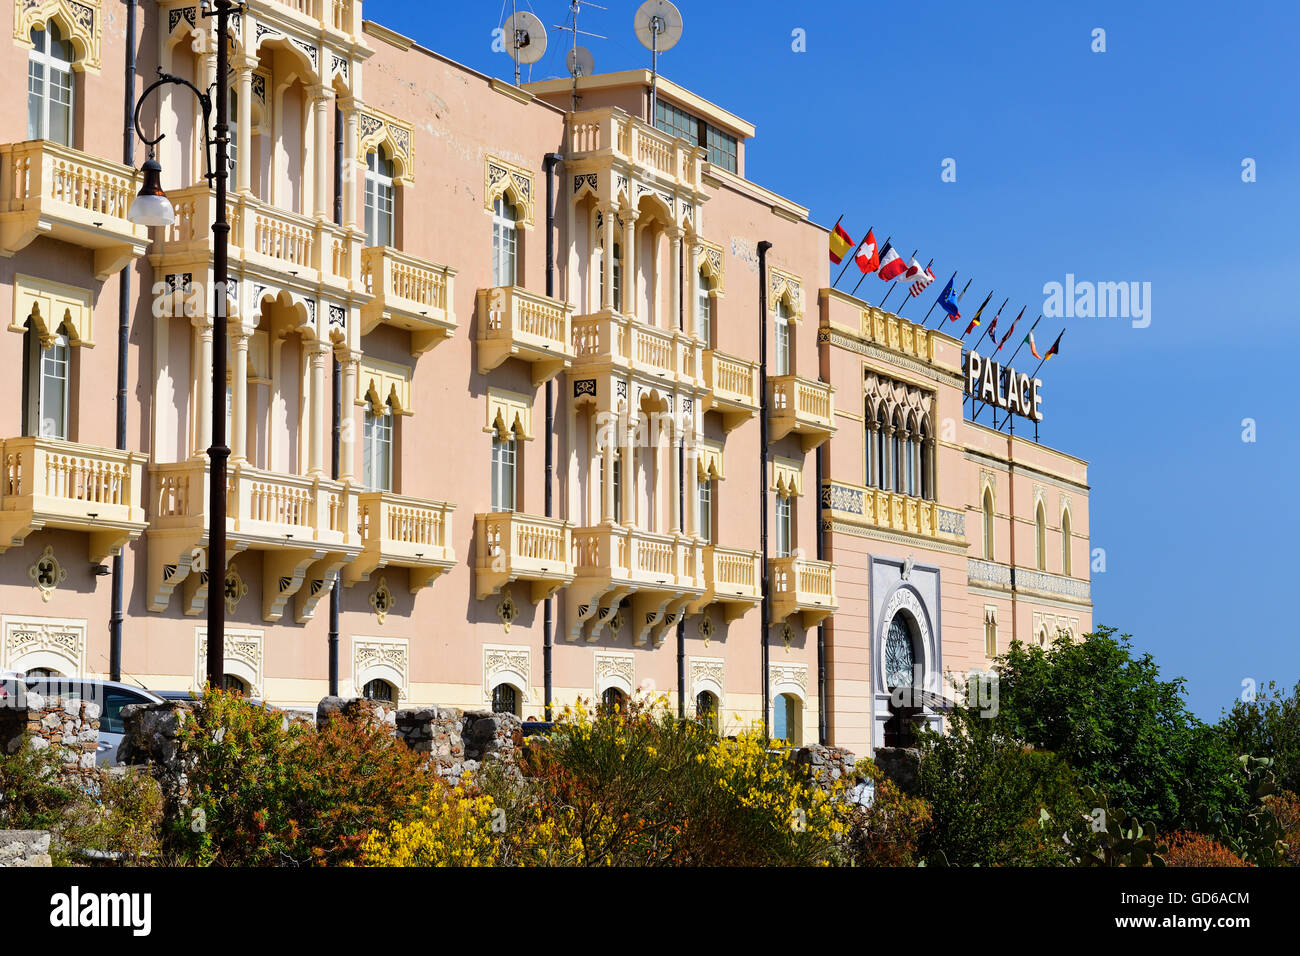 Excelsior Palace Hotel in Taormina, Sicily, Italy - Stock Image